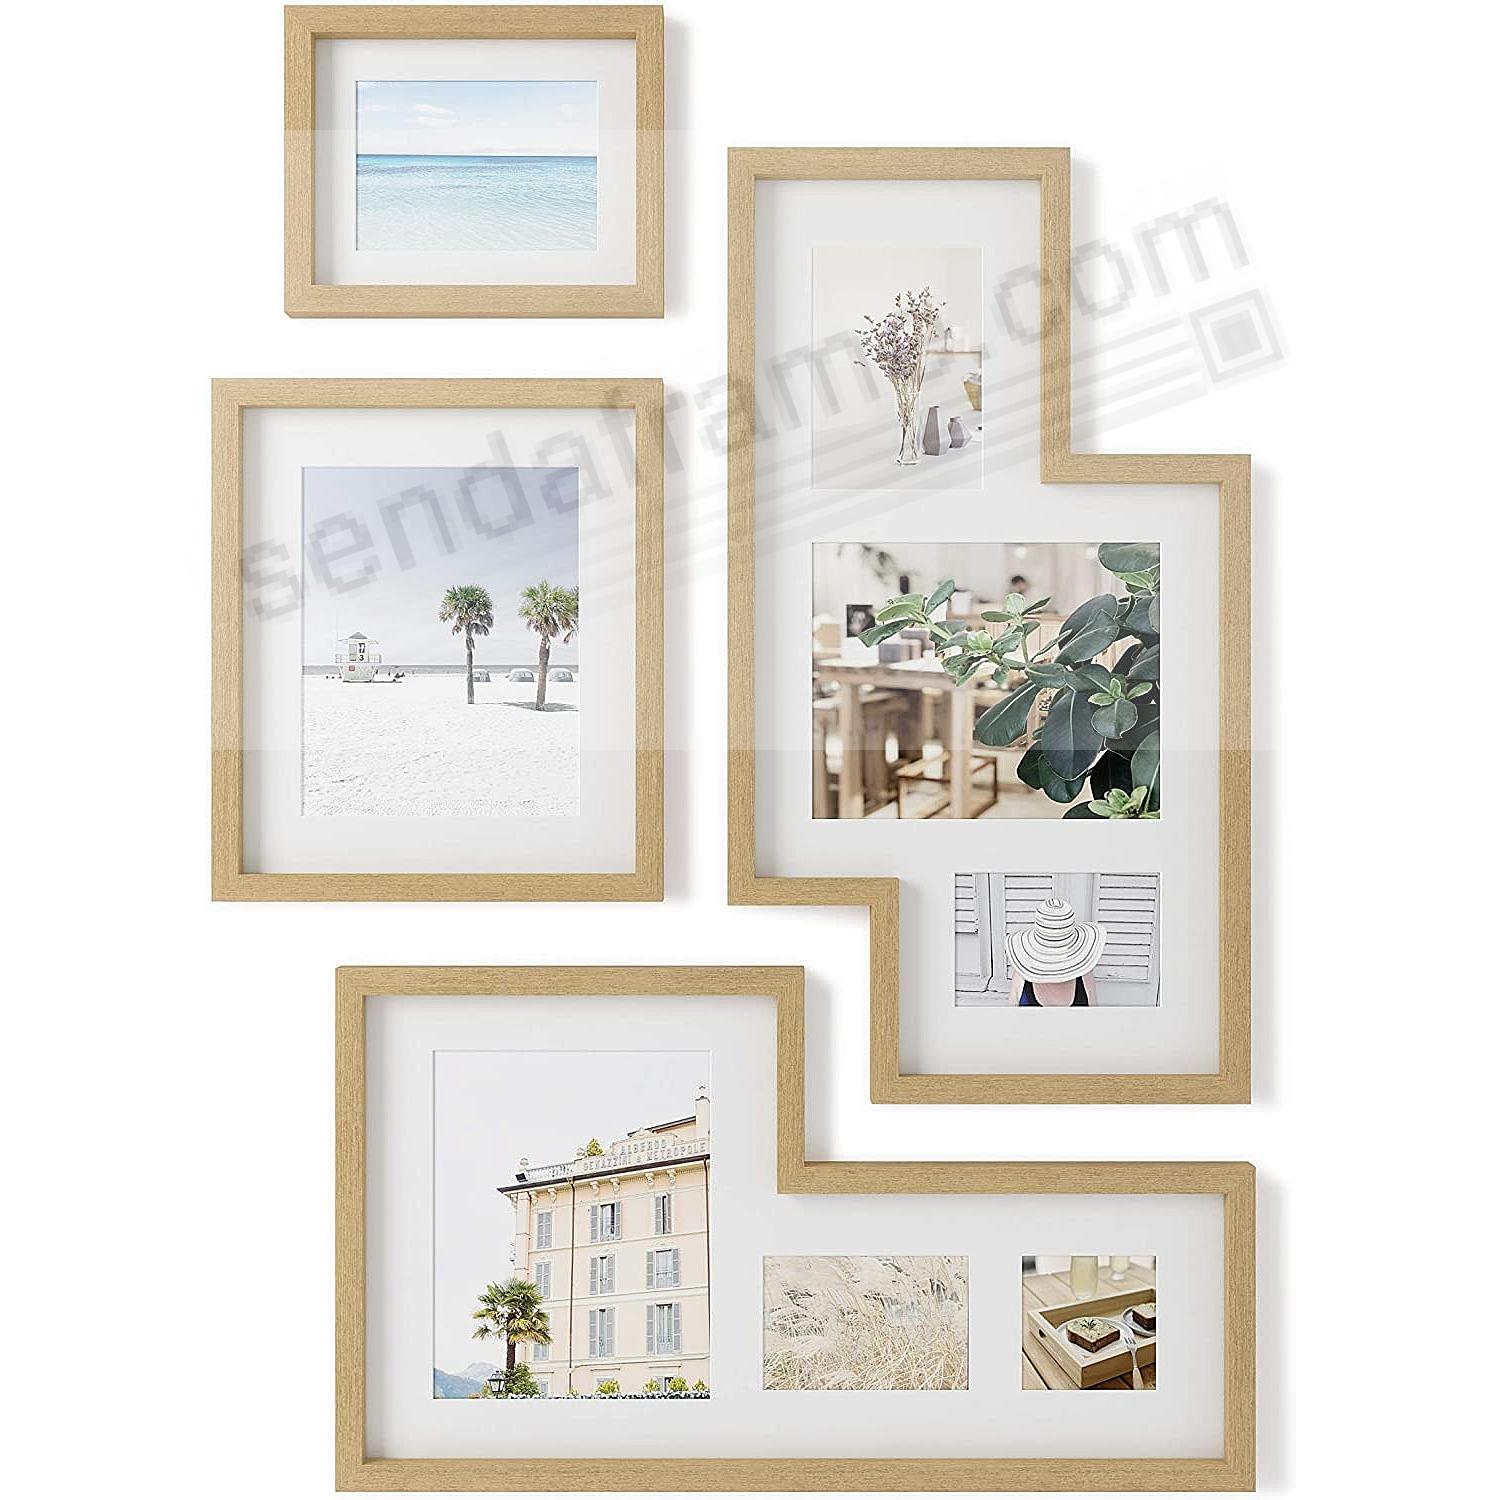 MINGLE Gallery Collage Picture Frame Set - Natural - by Umbra